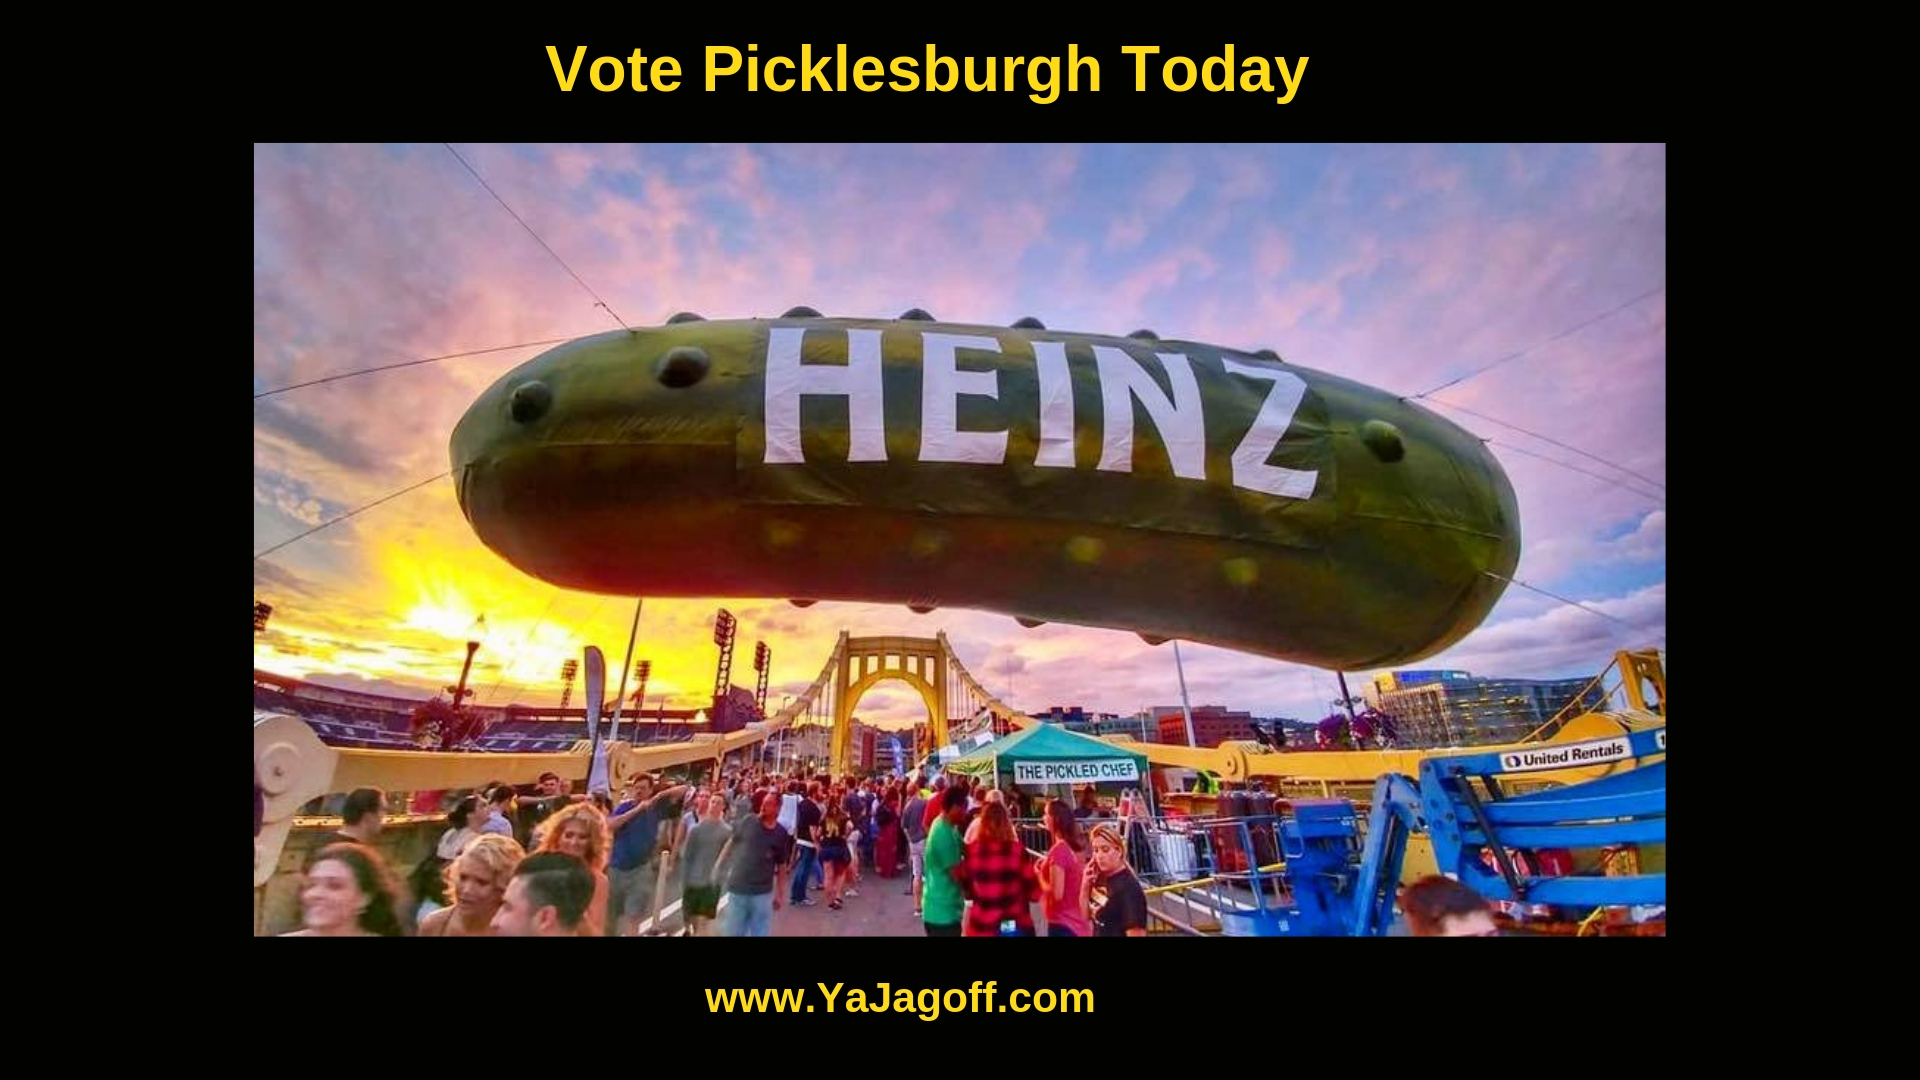 vote Picklesburgh in the national poll